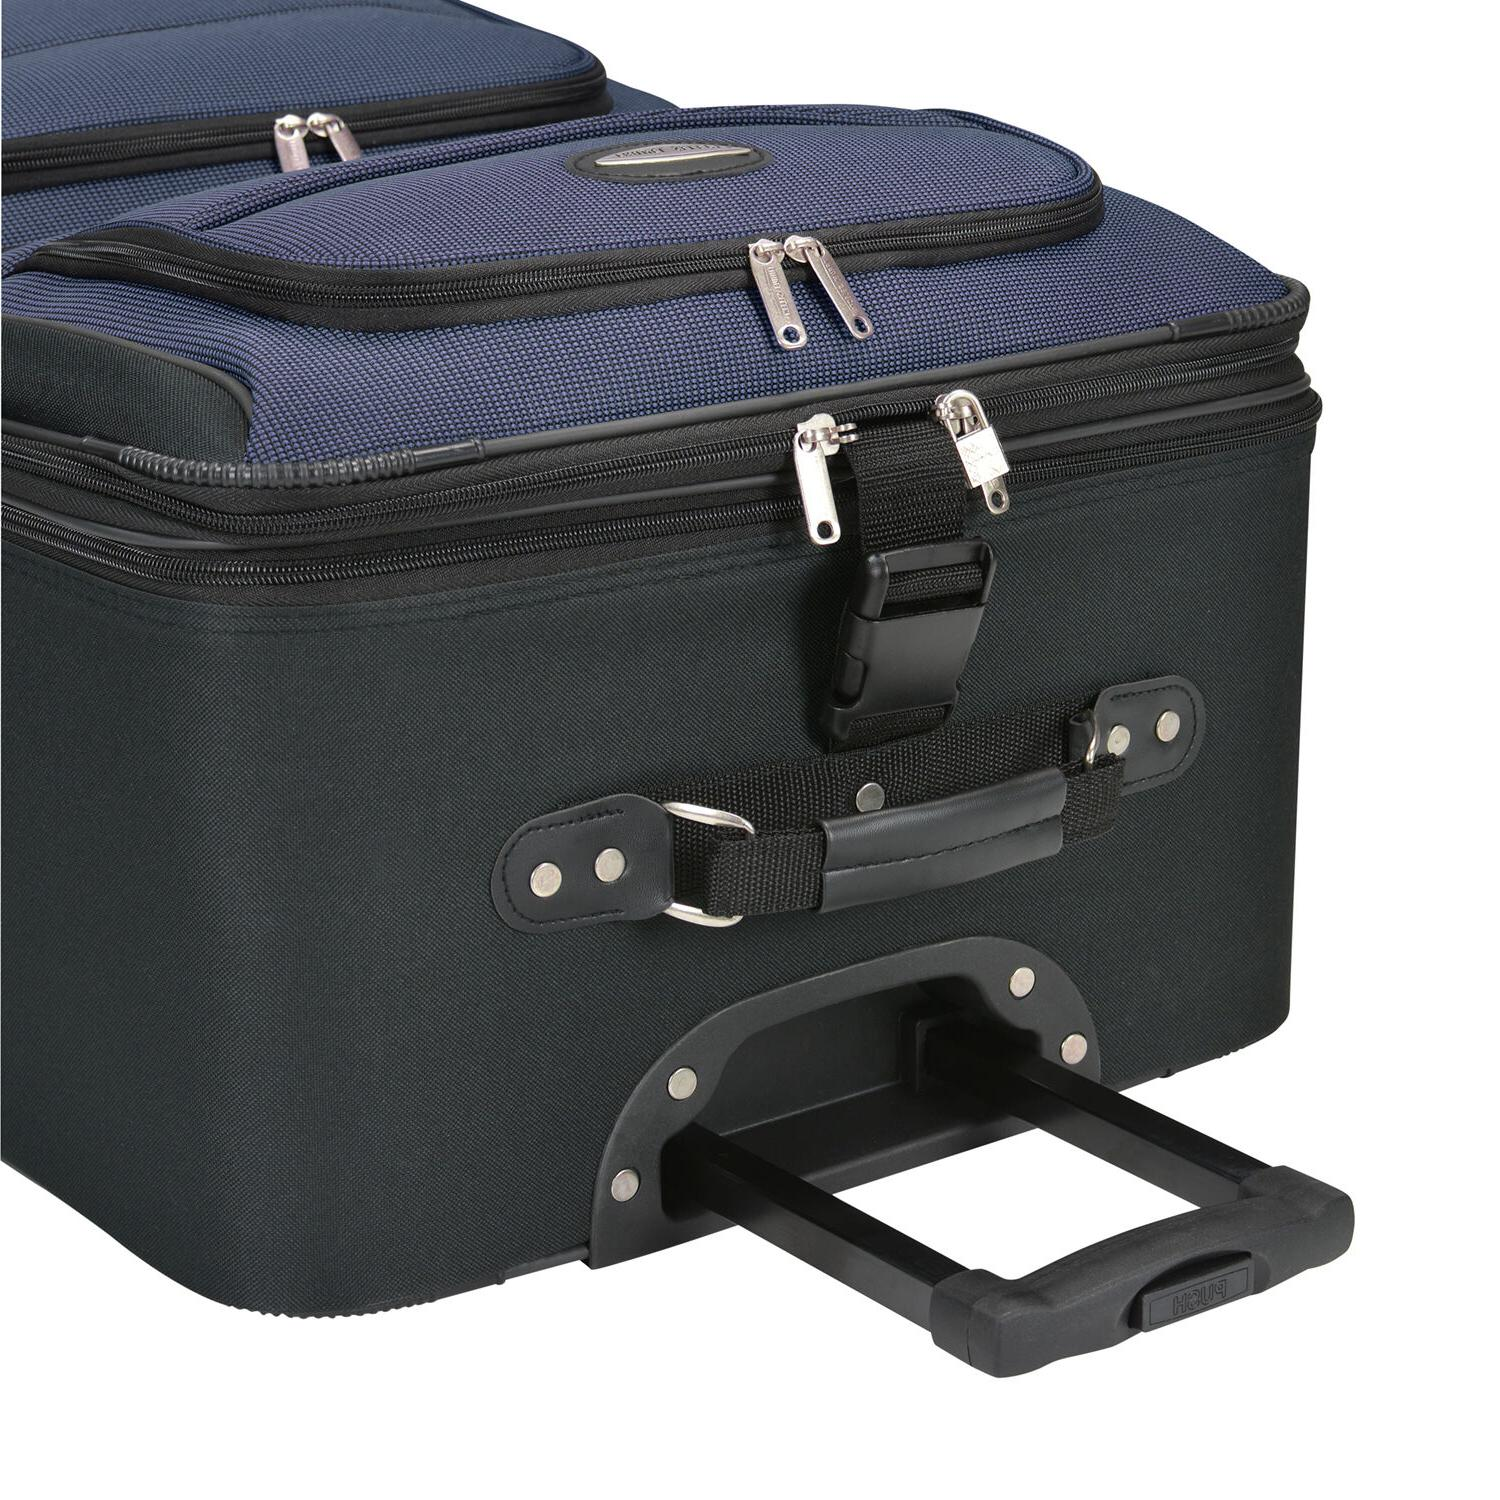 Traveler's Choice Carry-on Expandable Rolling Suitcase Bag